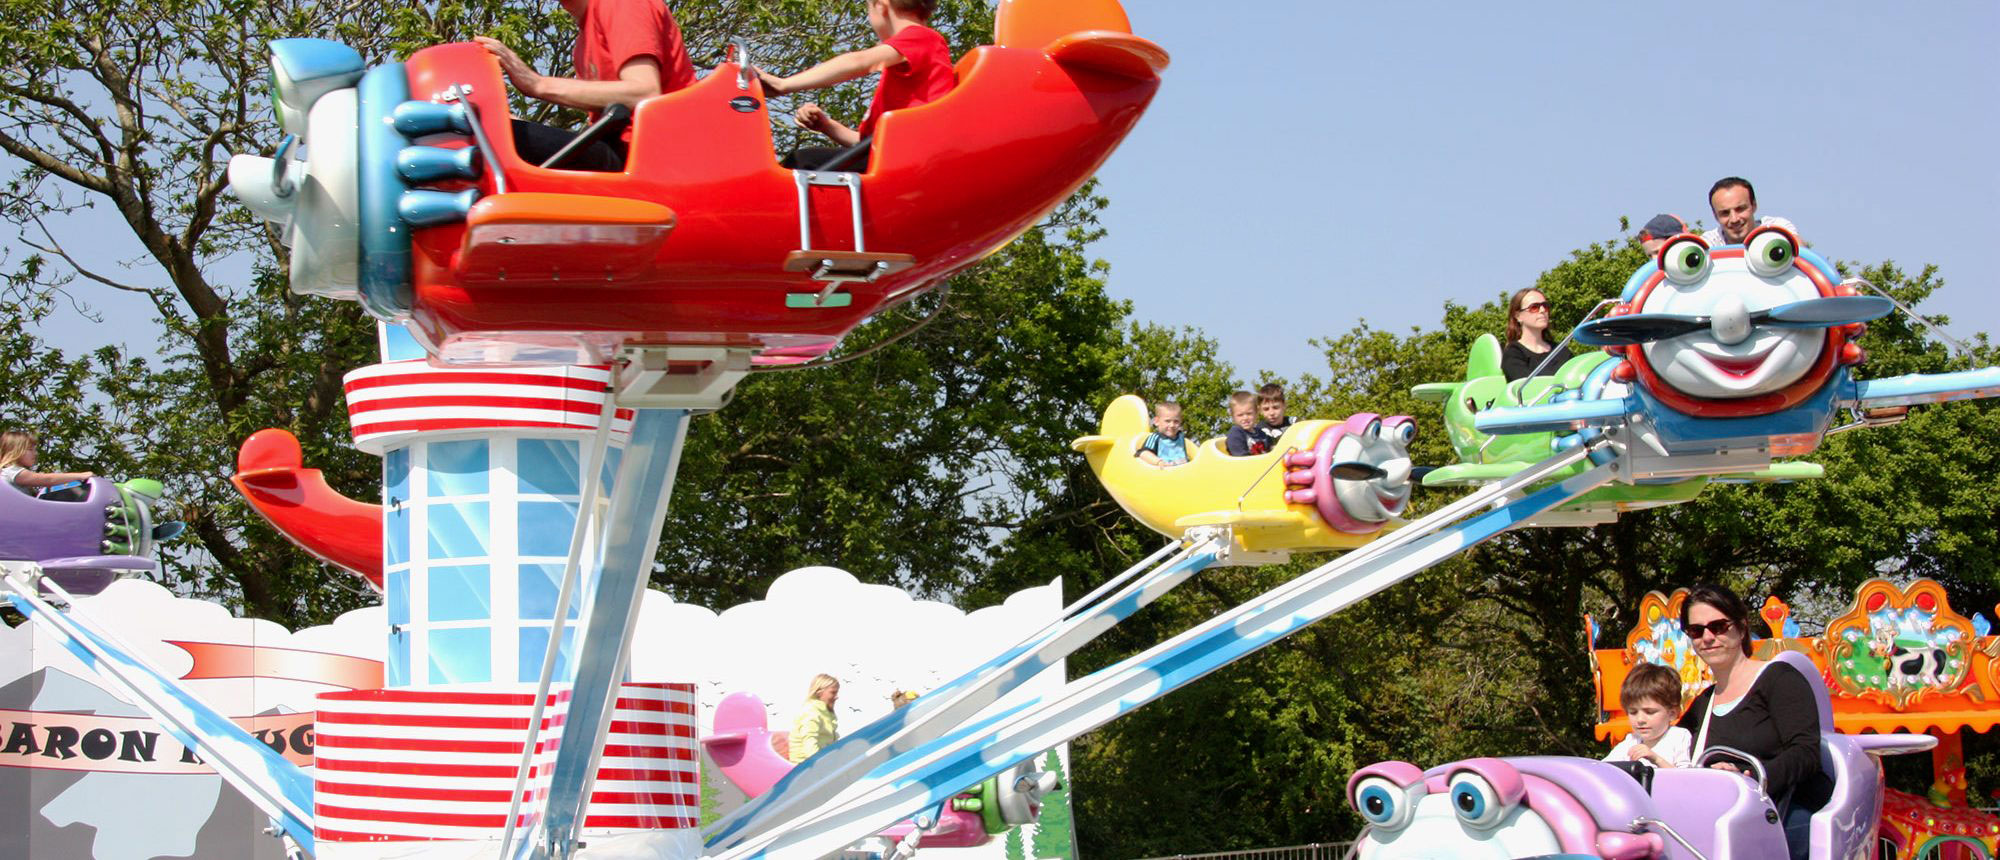 Parc attraction Bretagne : Baron Rouge